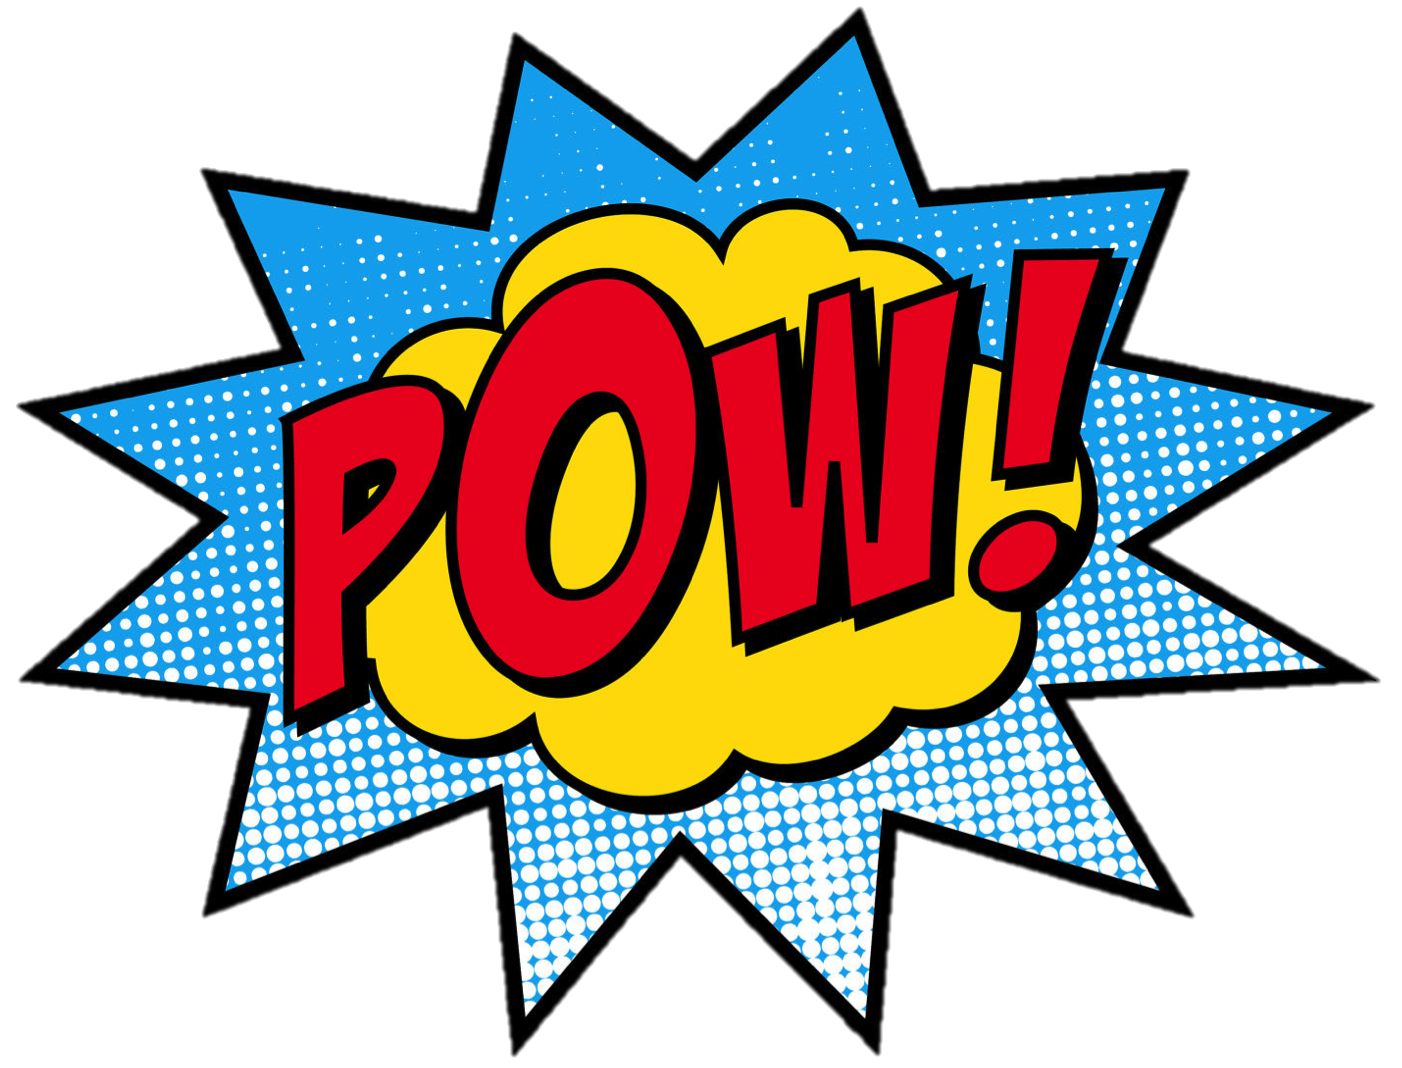 Superhero pow png. The power of words